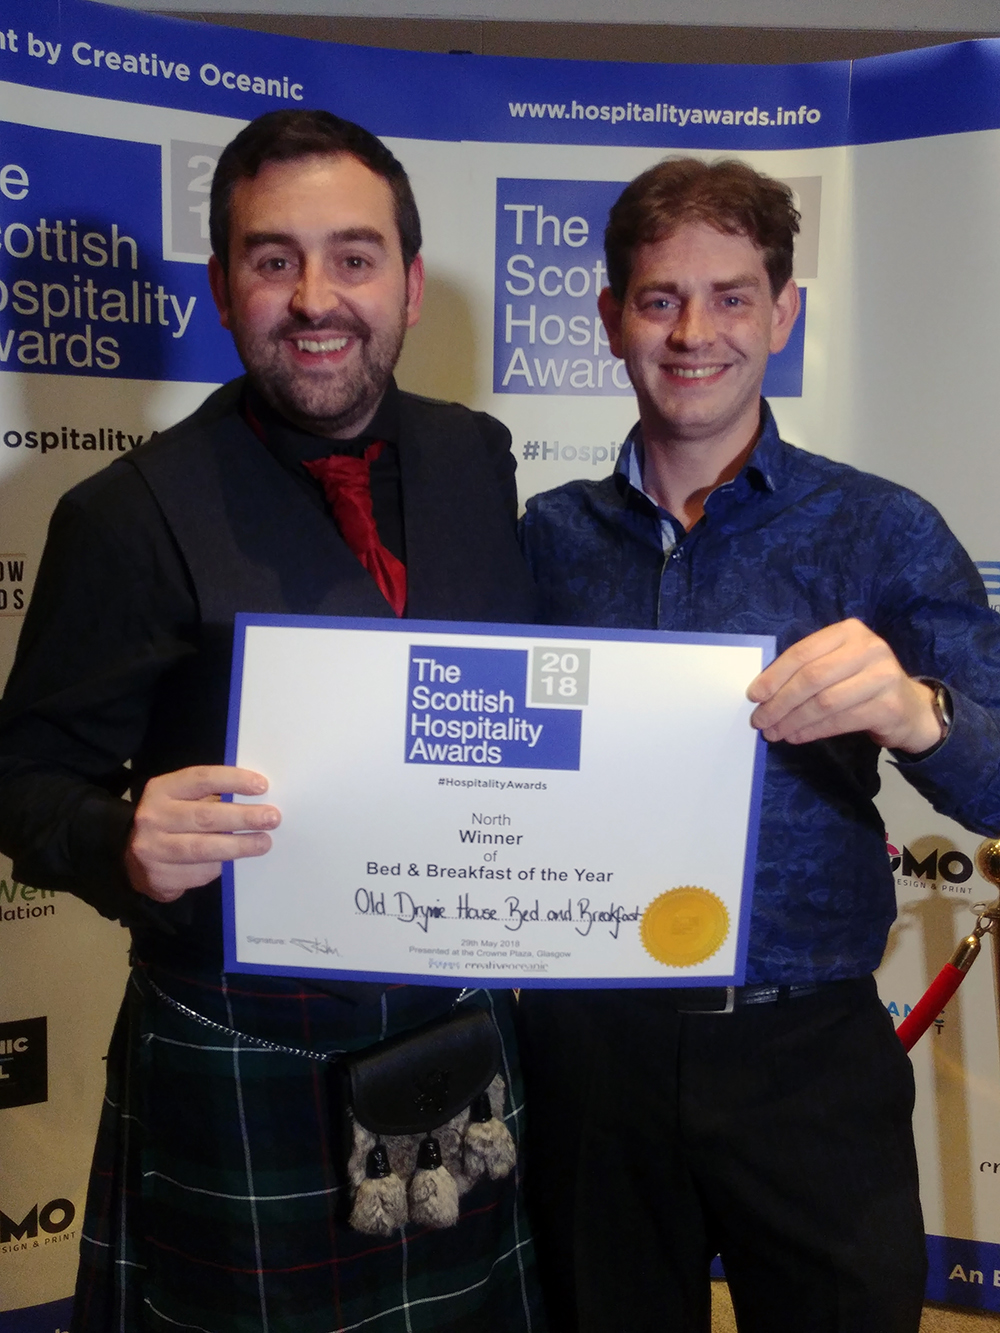 Will and Rob collecting the award